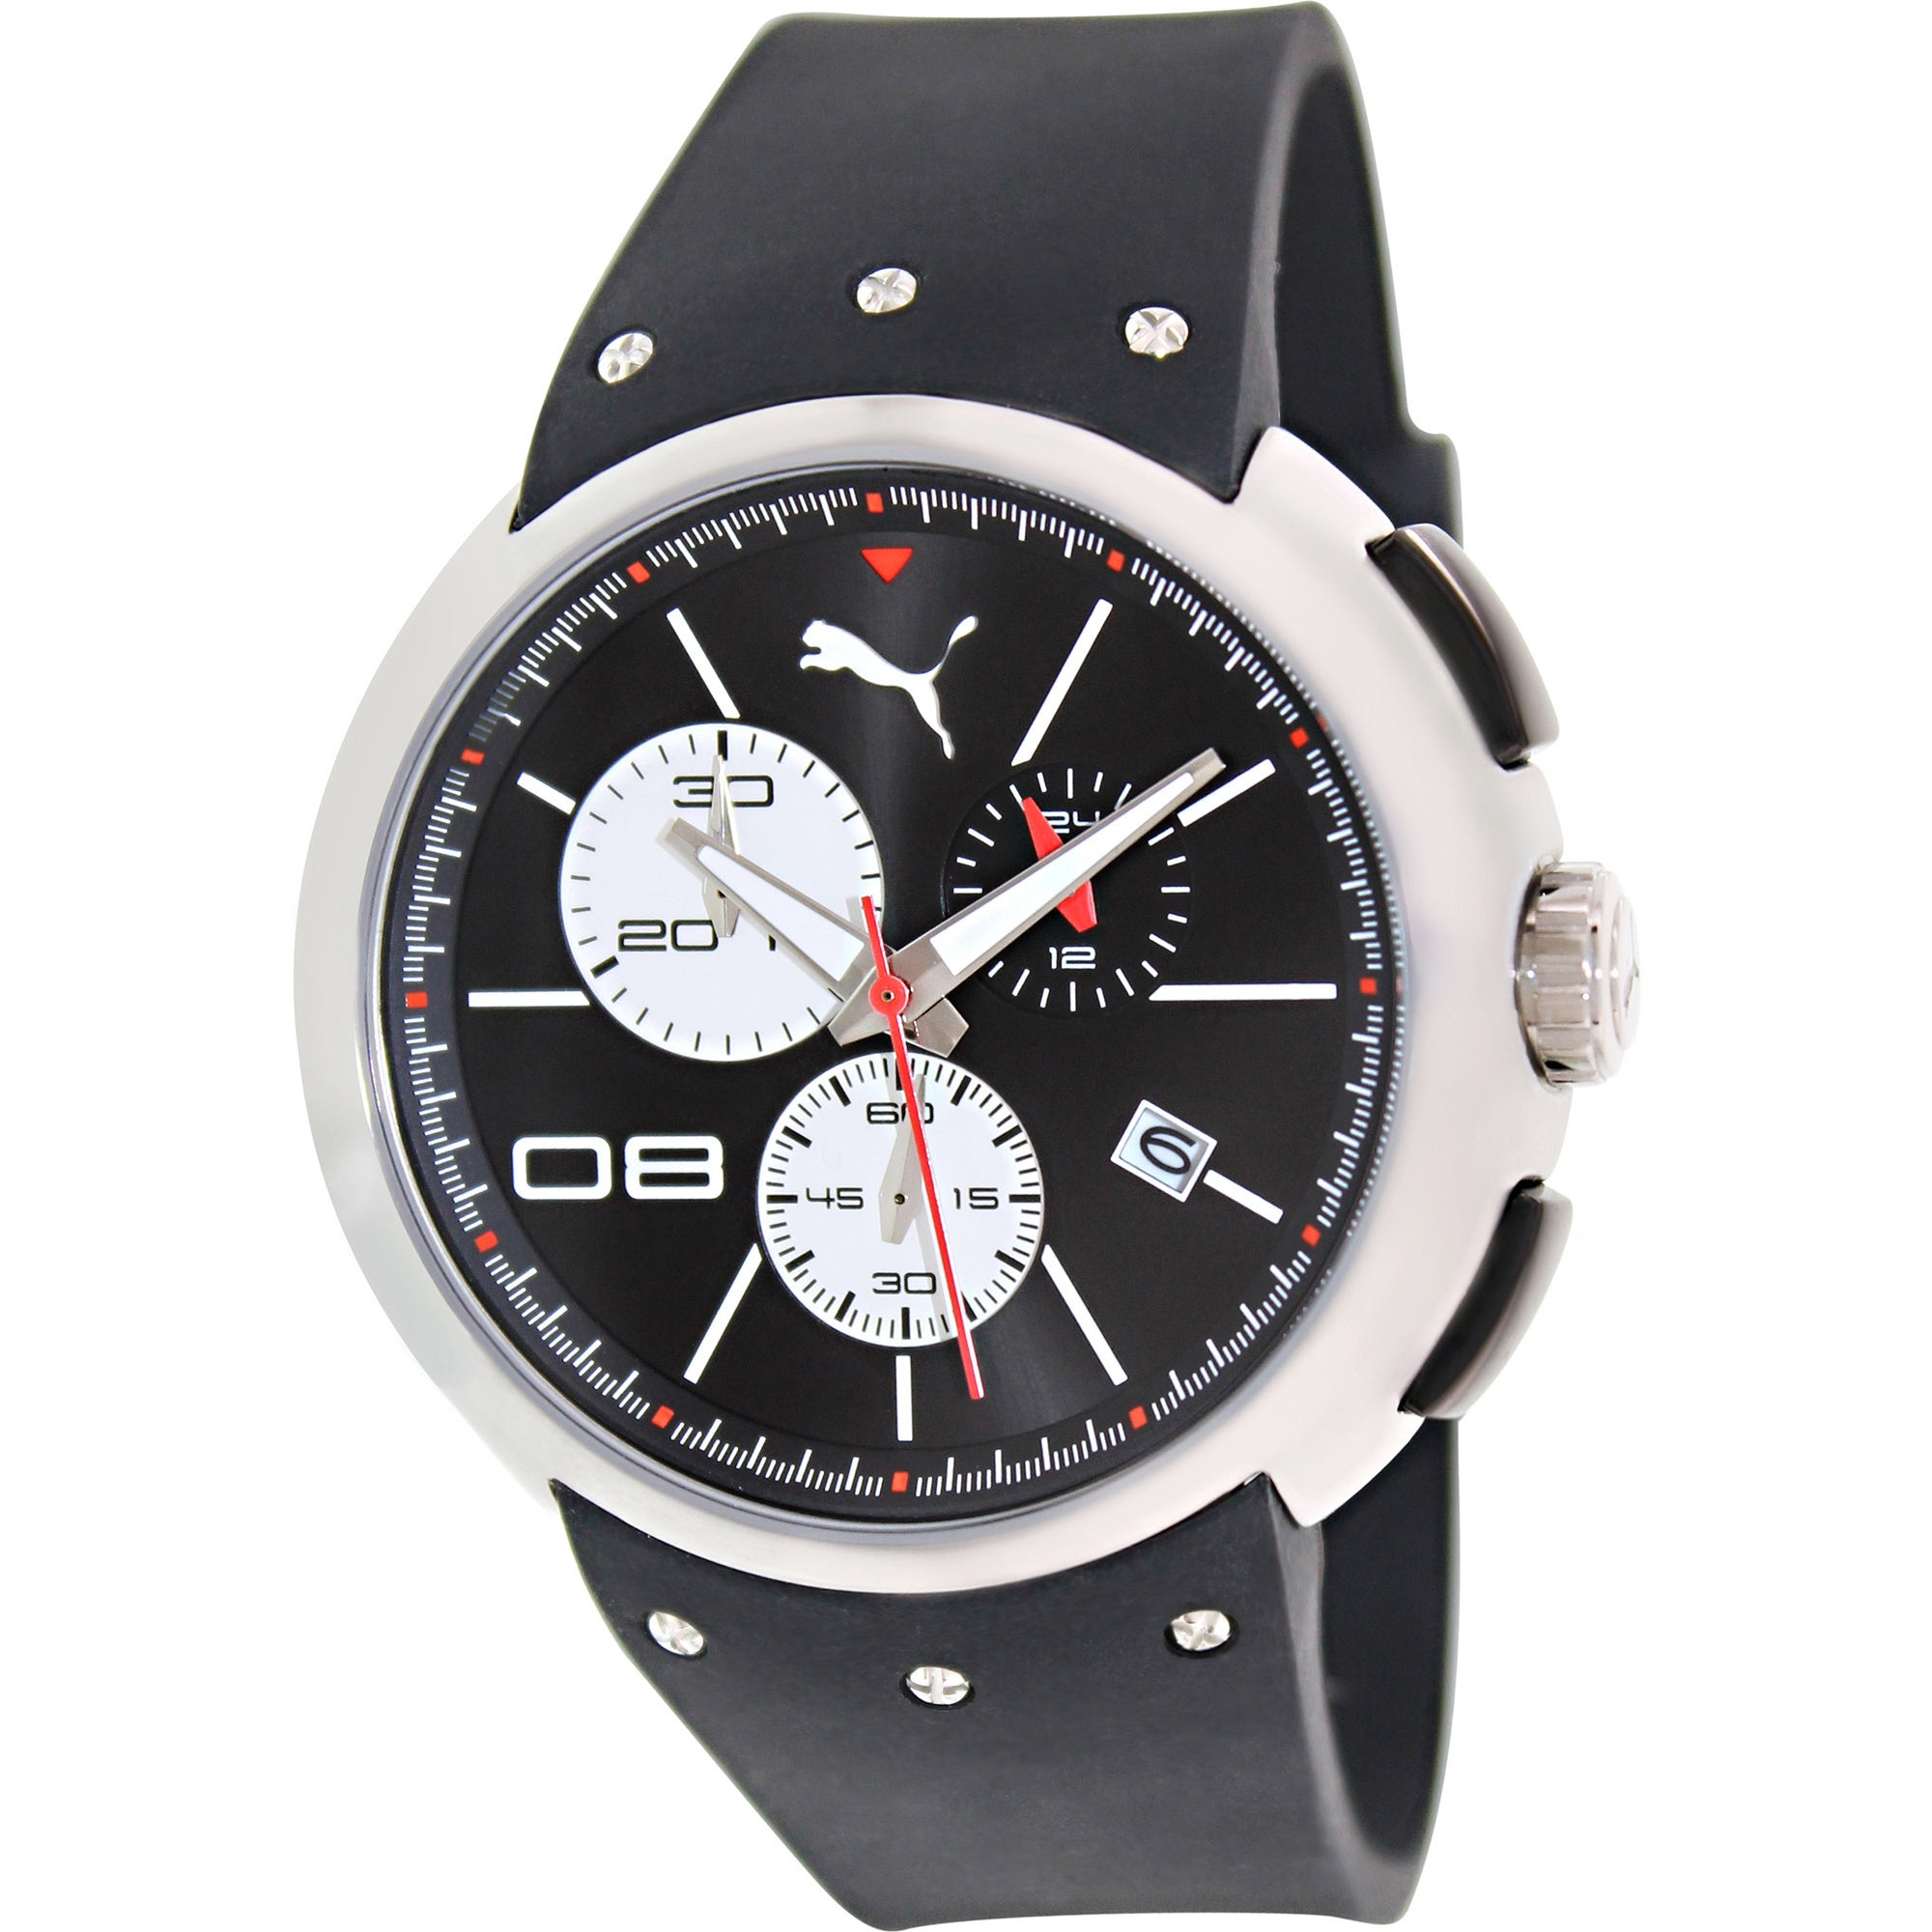 db1e0a99afff Shop Puma Men s Sport Black Silicone Quartz Watch with Black Dial - Free  Shipping Today - Overstock - 8757917